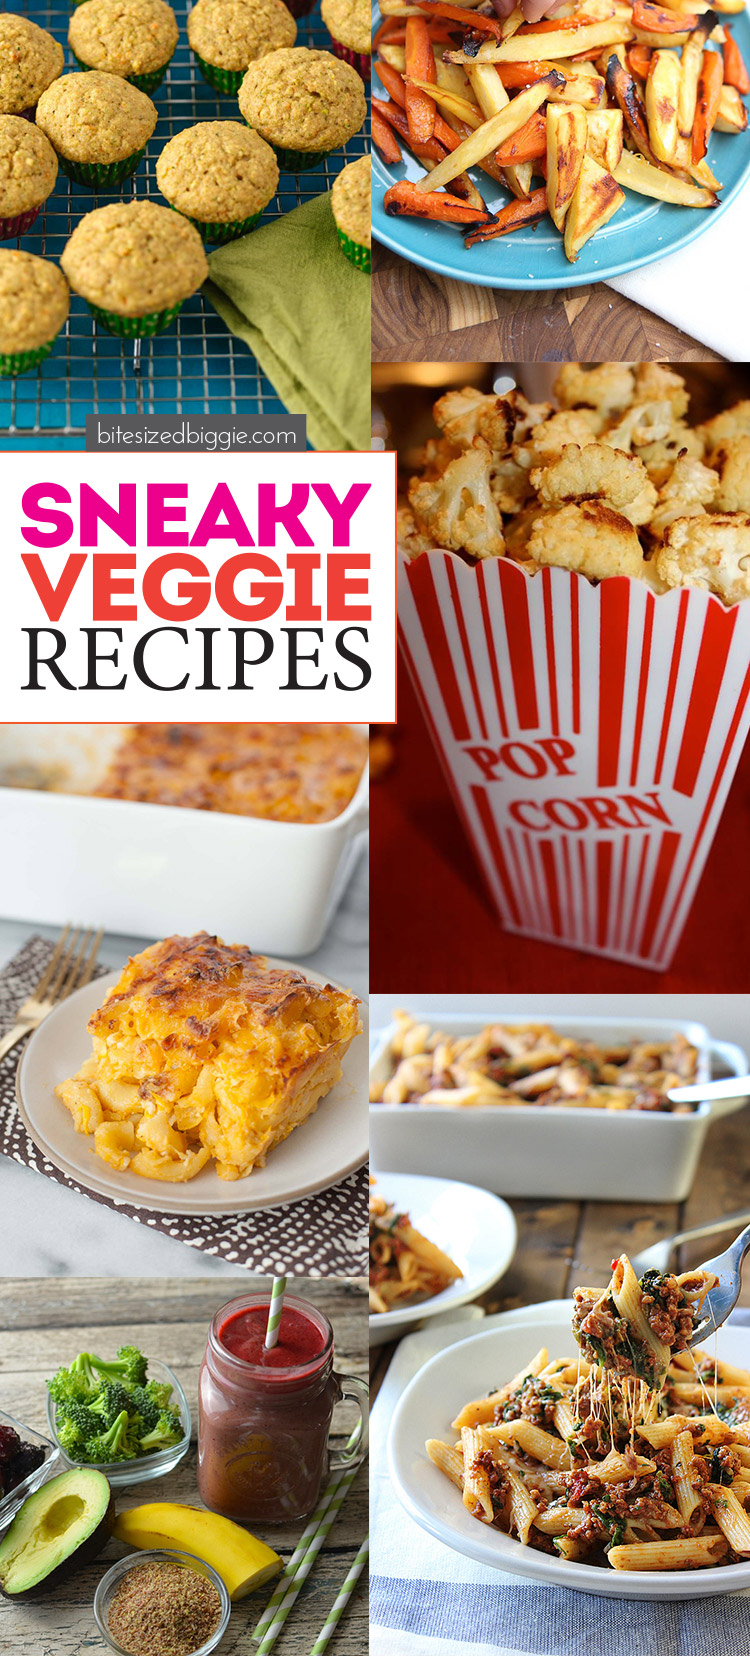 Sneaky veggie recipes - your guests will have no idea how healhty these are (unless you tell them) because these are SO DELICIOUS!